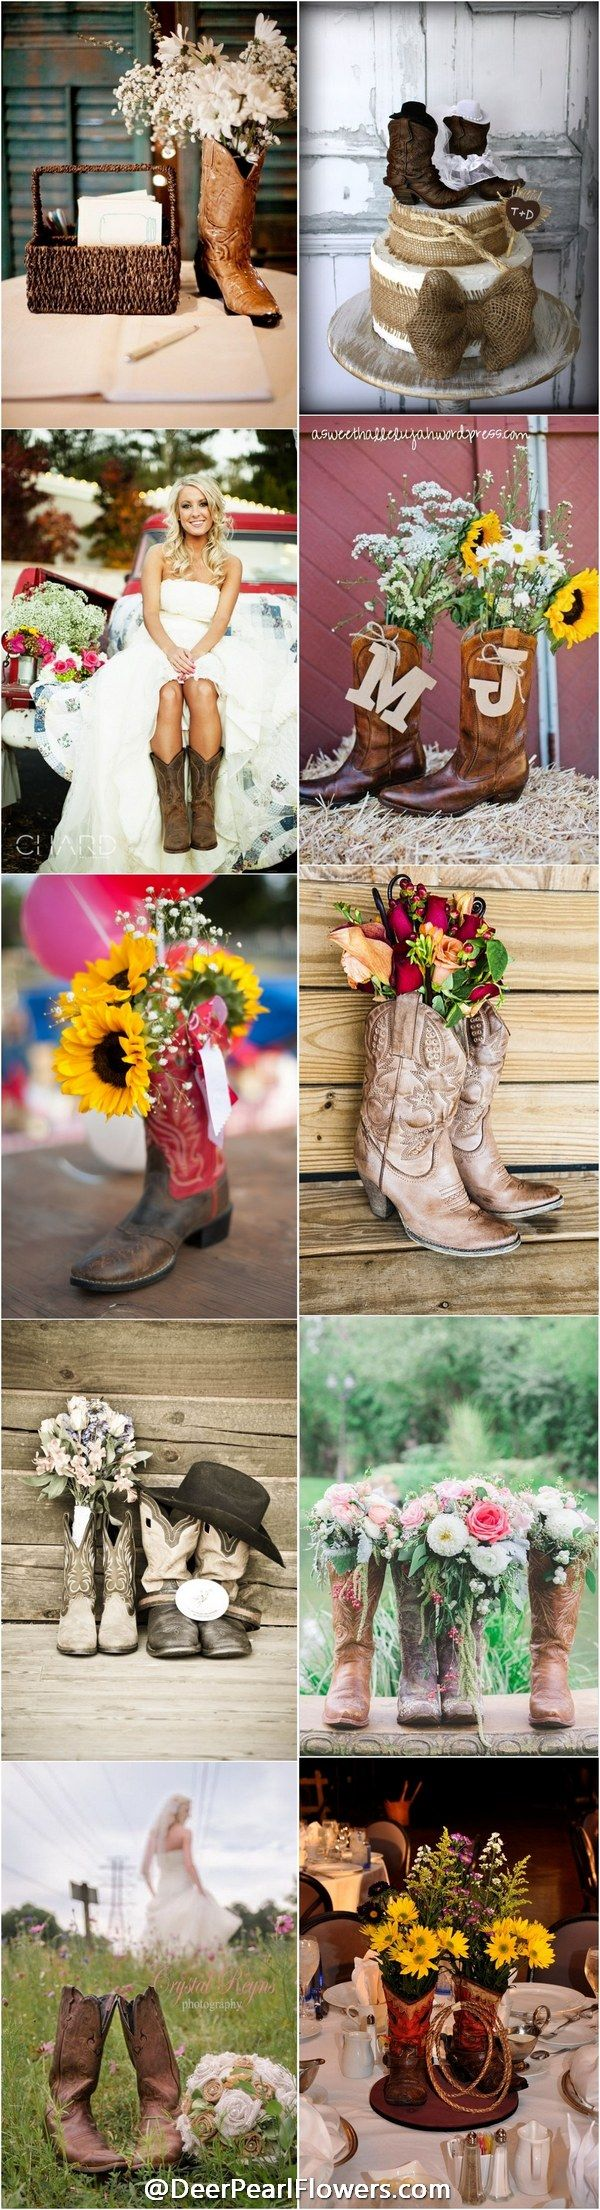 awesome Cowgirl Wedding Ideas Part - 12: rustic country cowboy cowgirl wedding ideas -  http:--www.deerpearlflowers.com